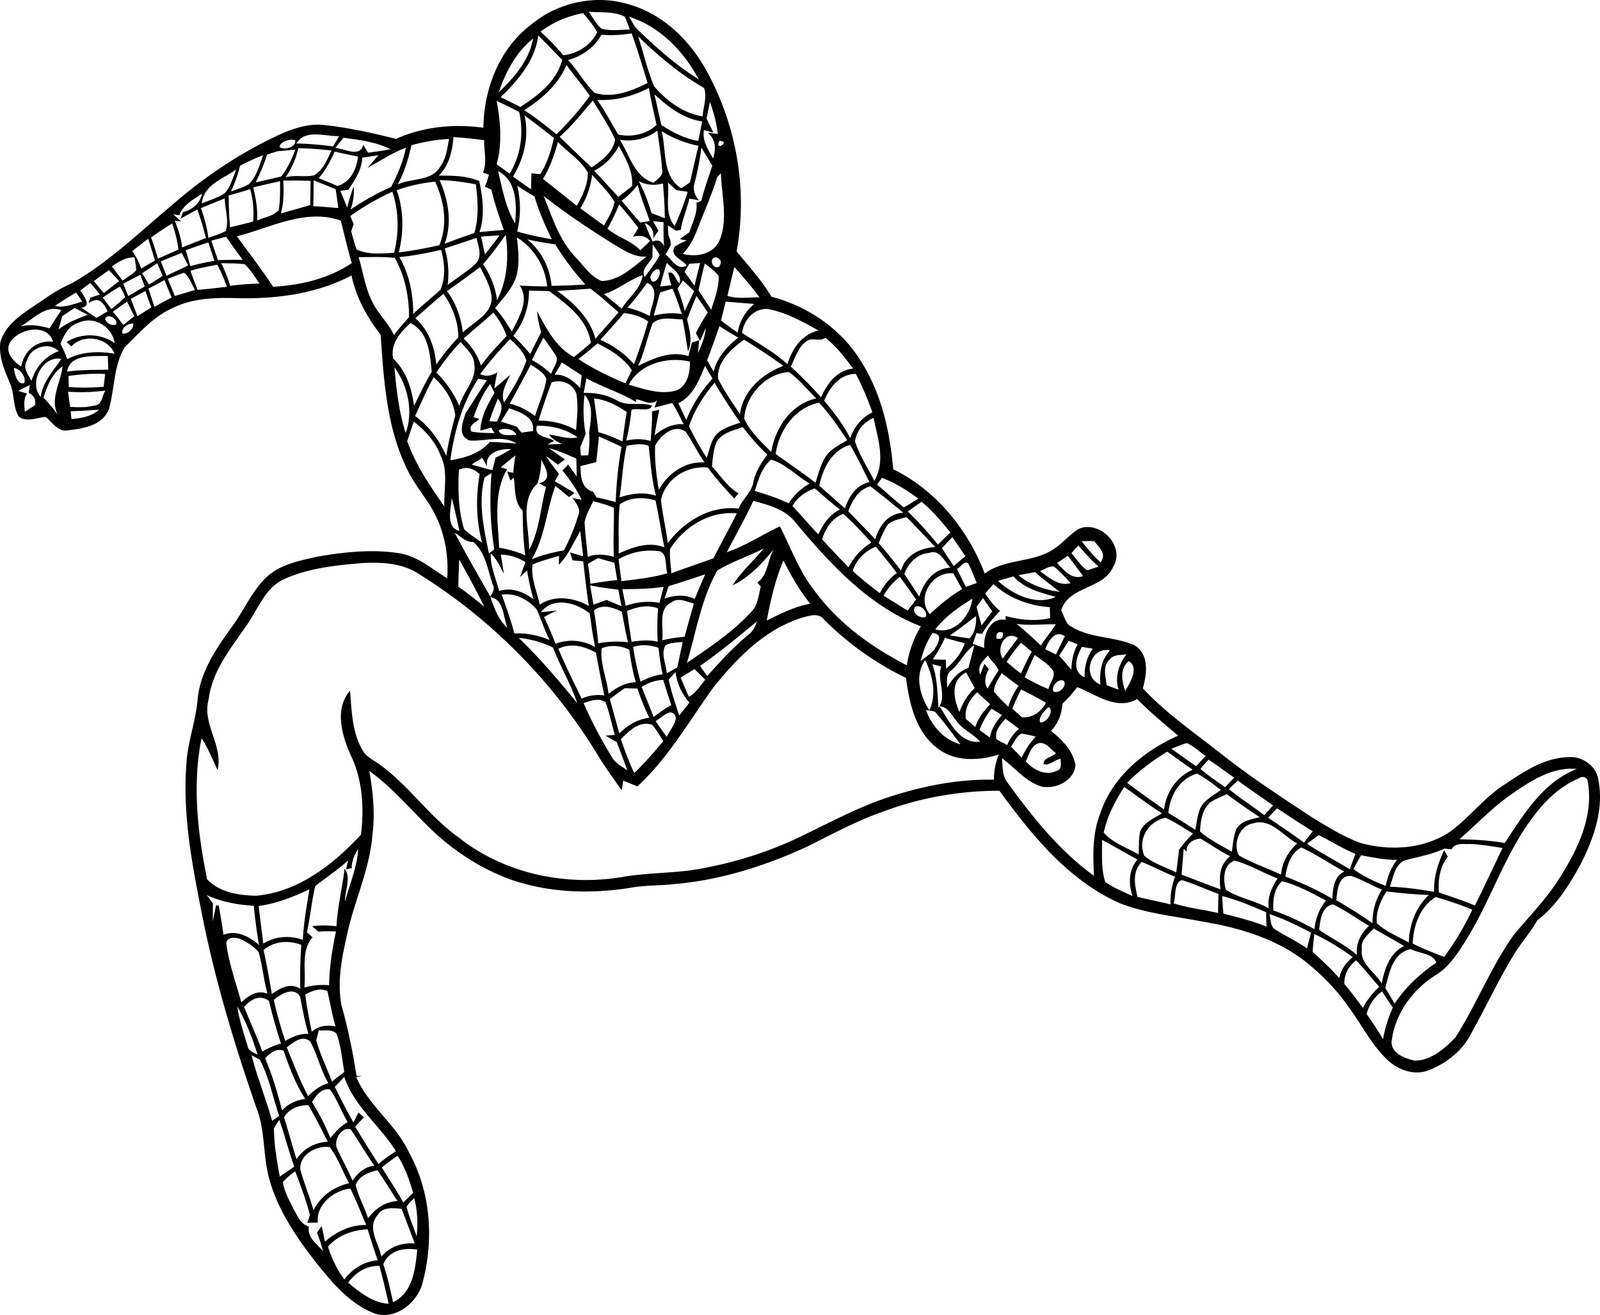 spiderman colouring pics coloring page spiderman 3 coloring pages 13 pics colouring spiderman